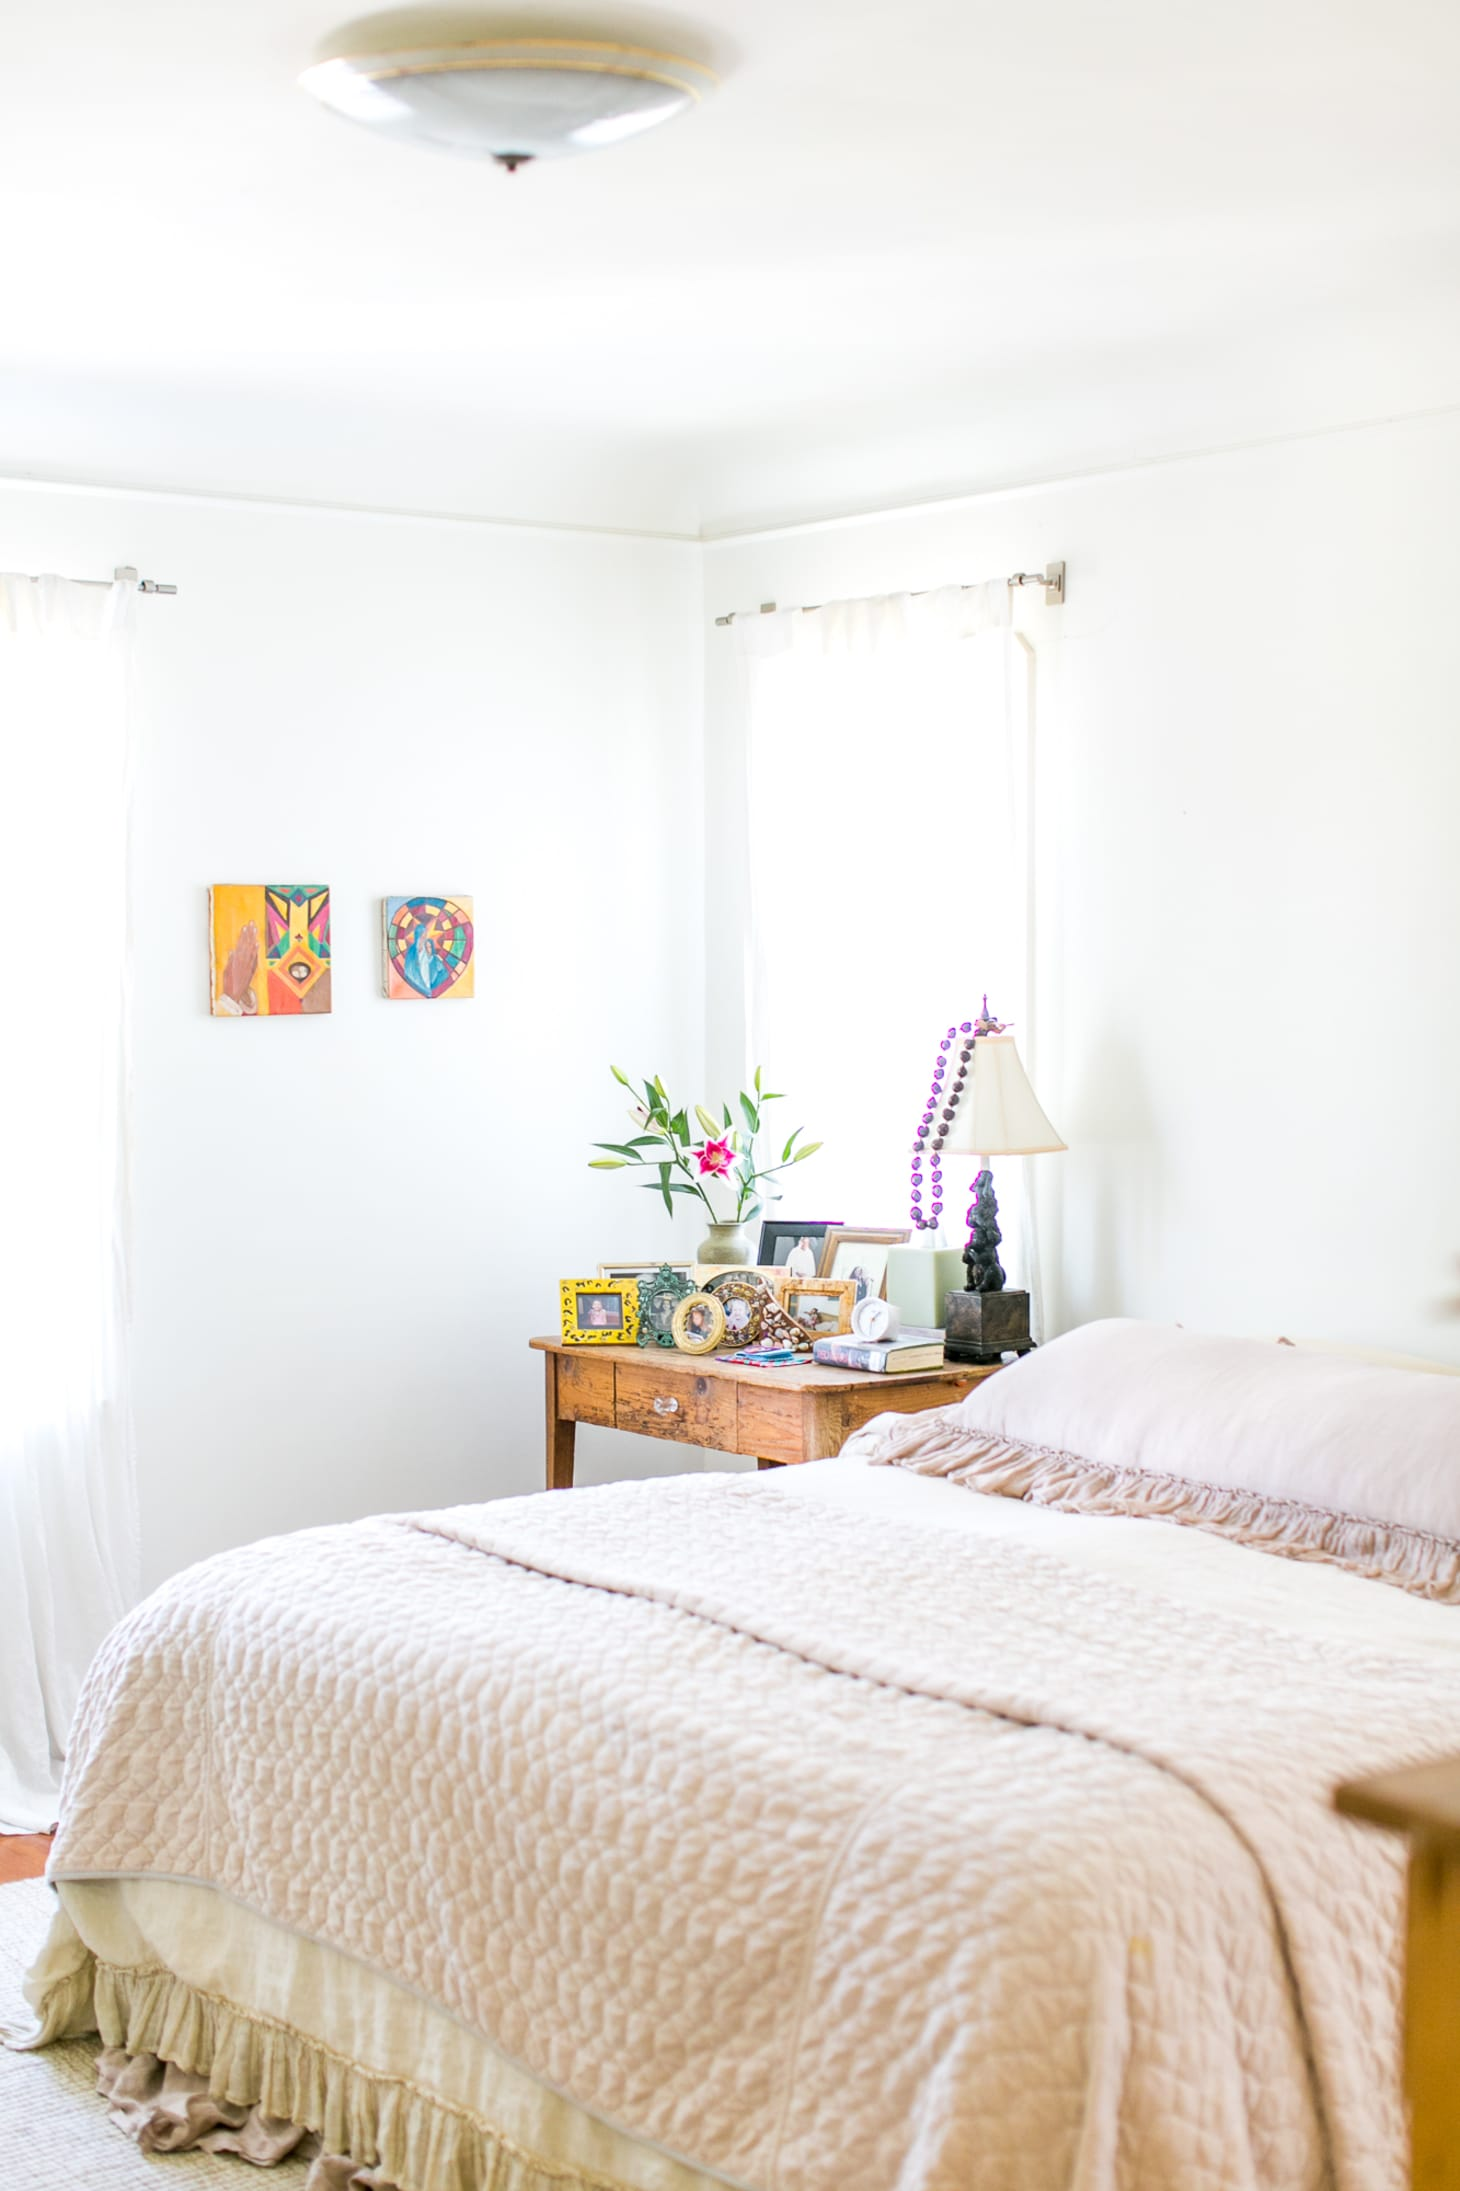 How To Fix A Squeaky Bed With Socks Apartment Therapy